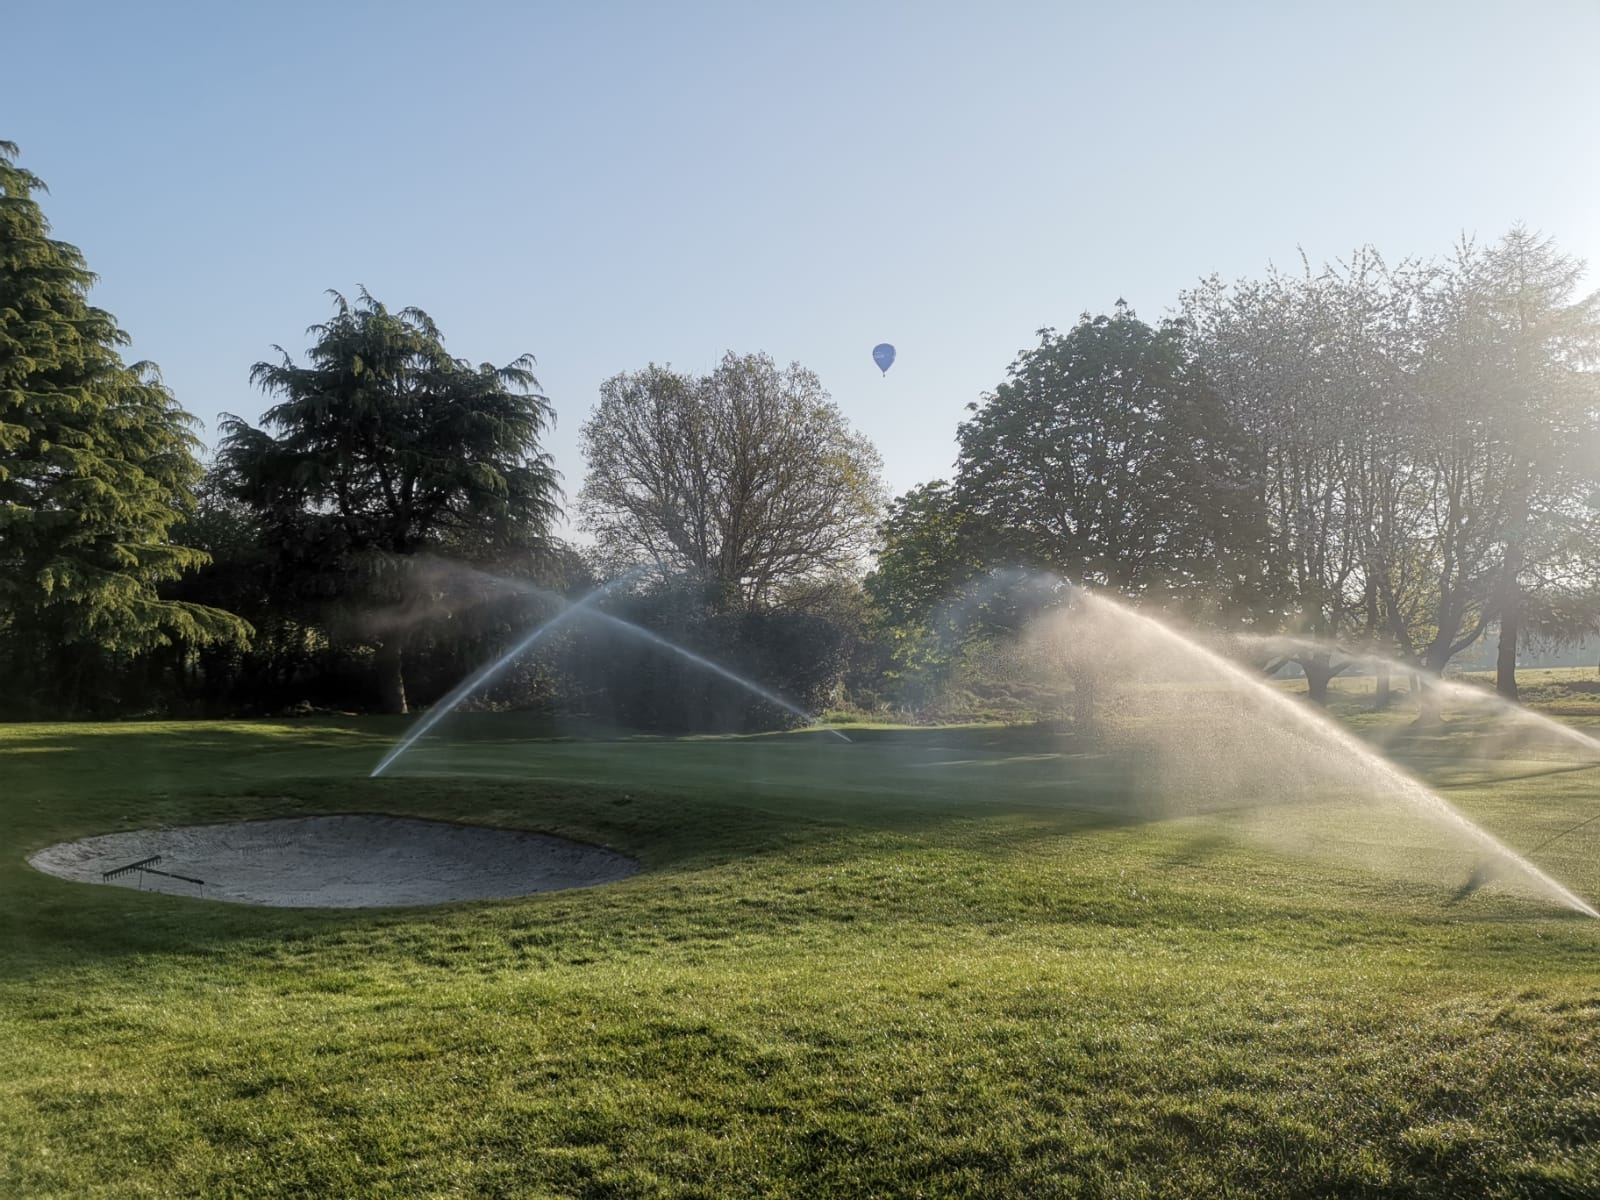 View of Irrigation system sprinklers for golf course